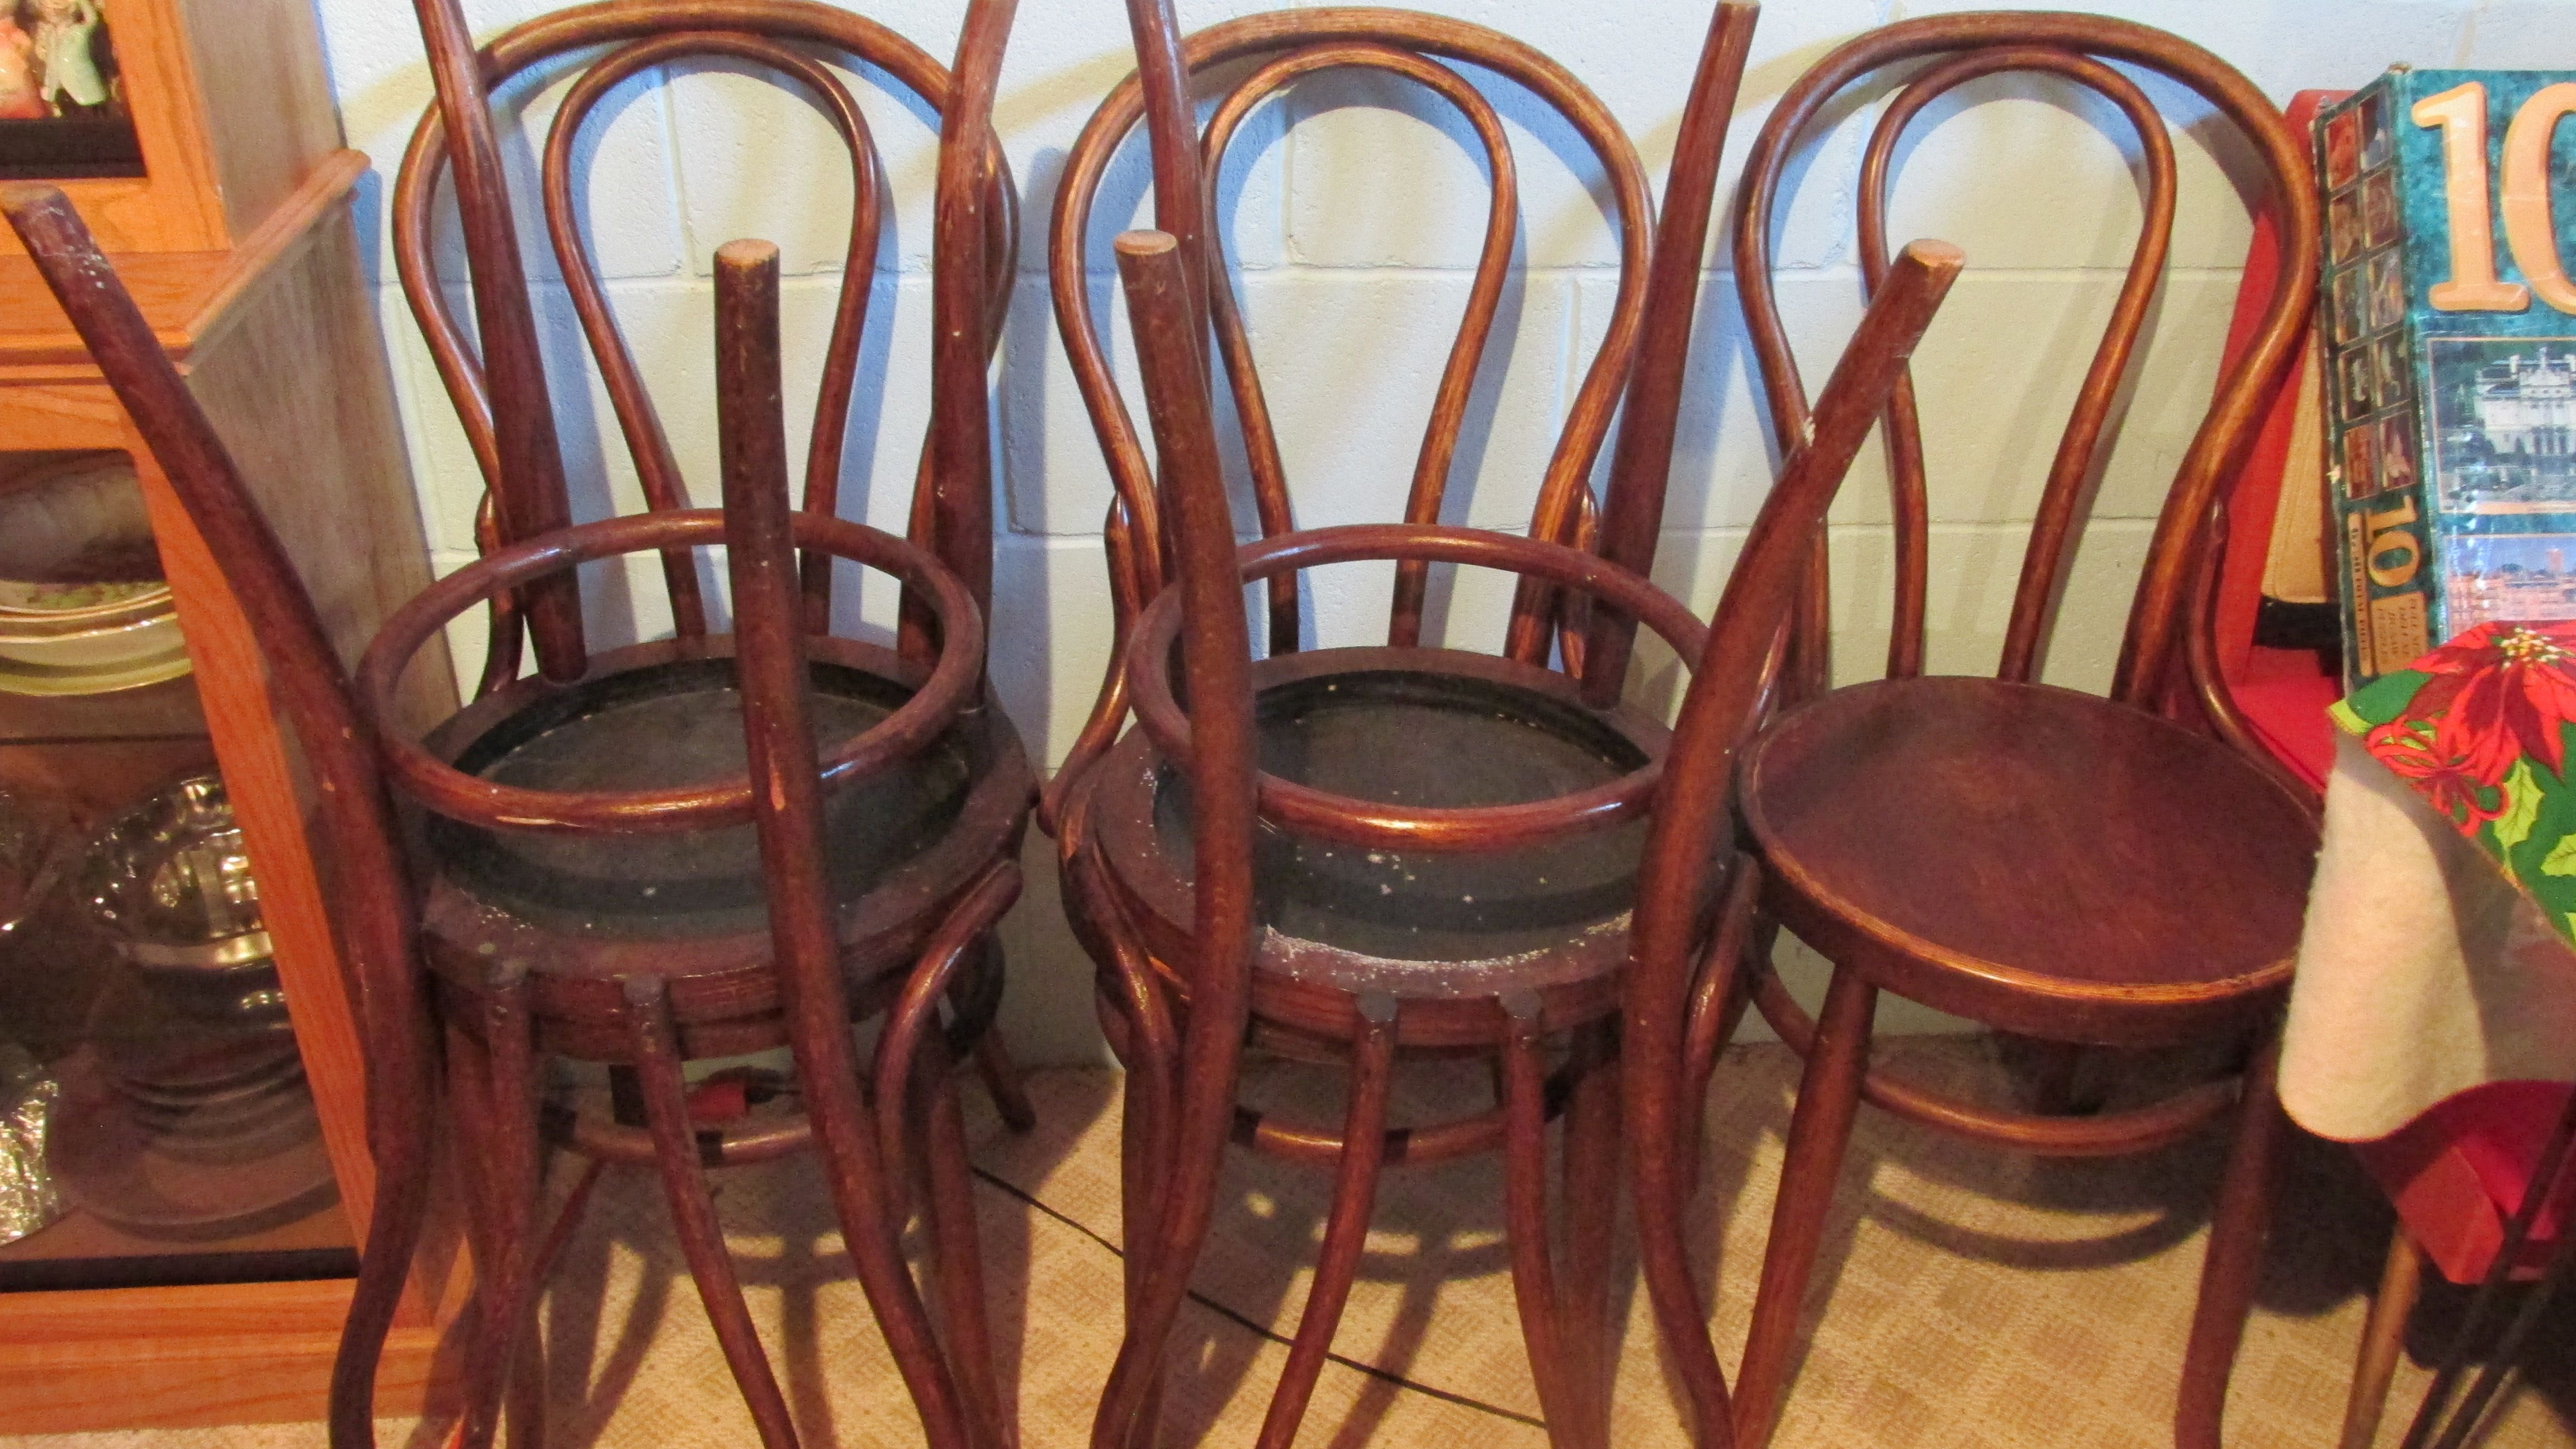 2.8 Chairs